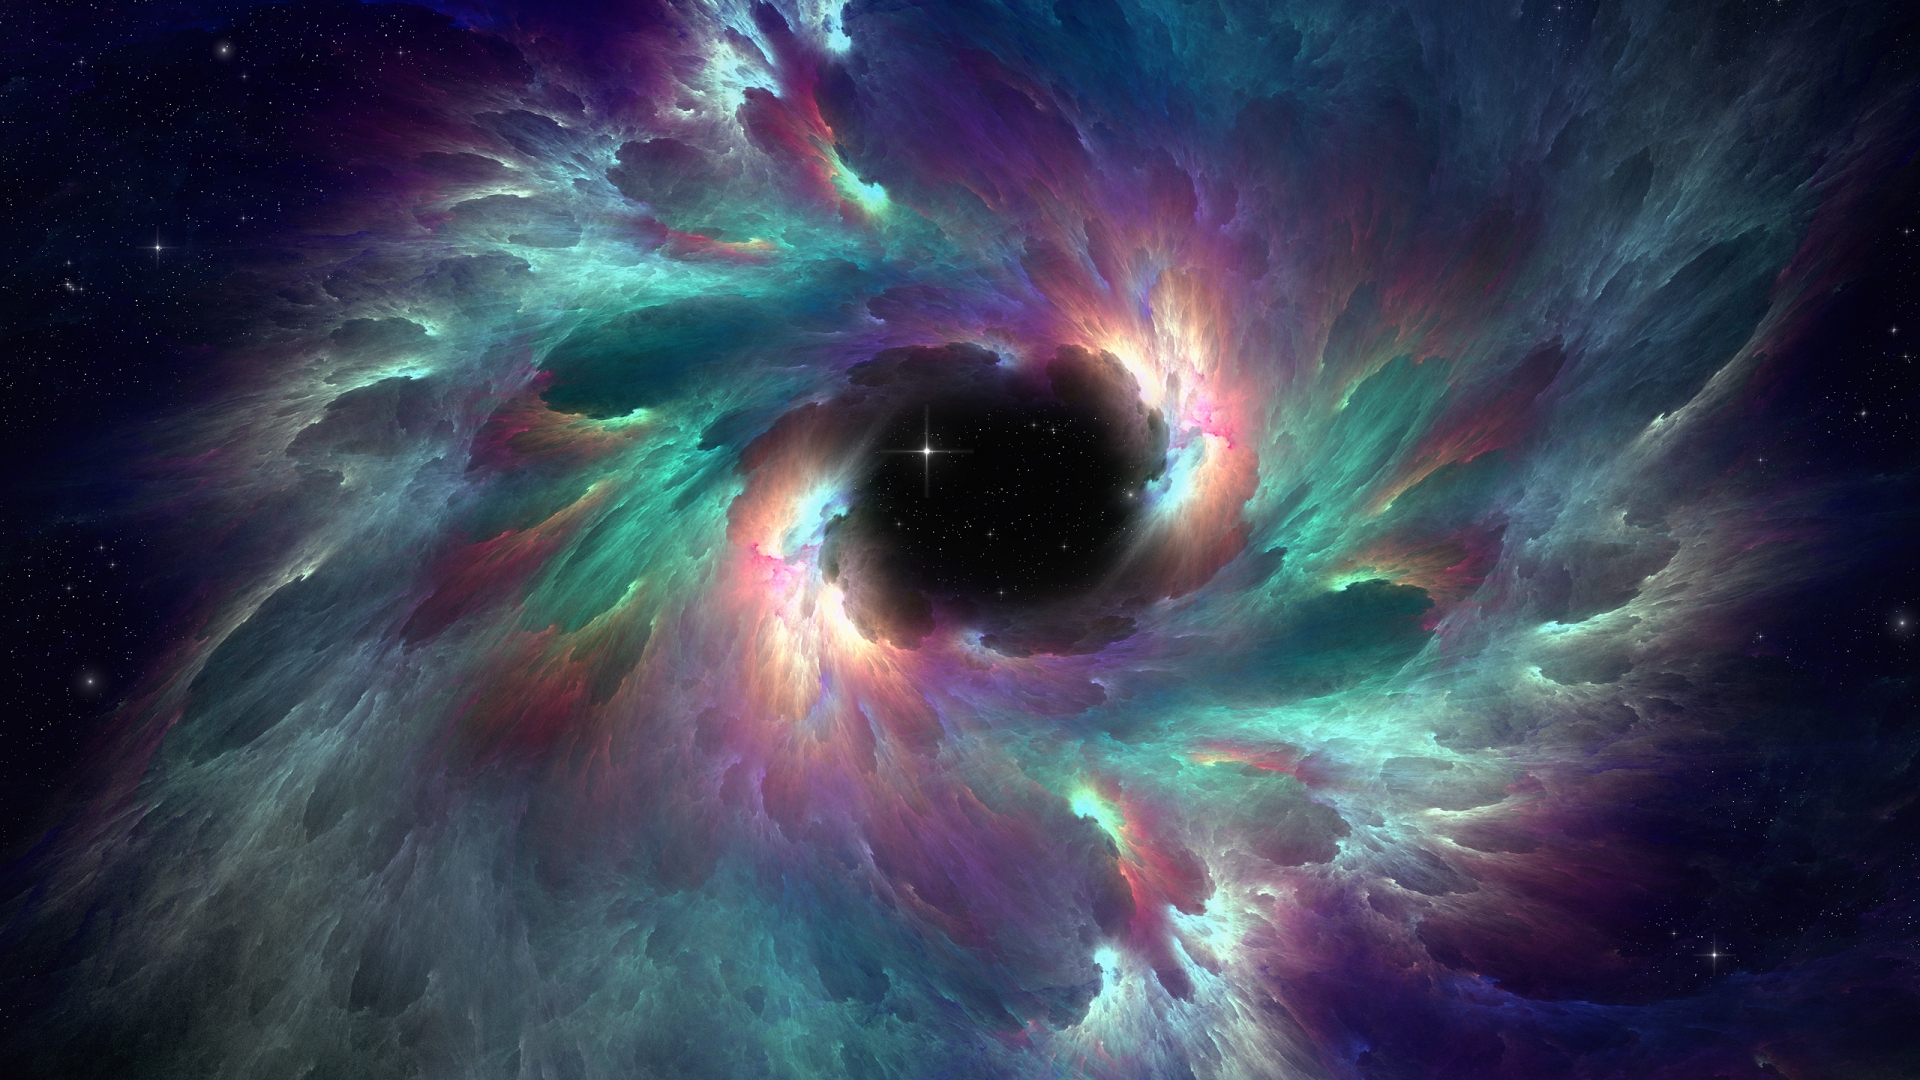 Iridescent Nebula Wallpaper